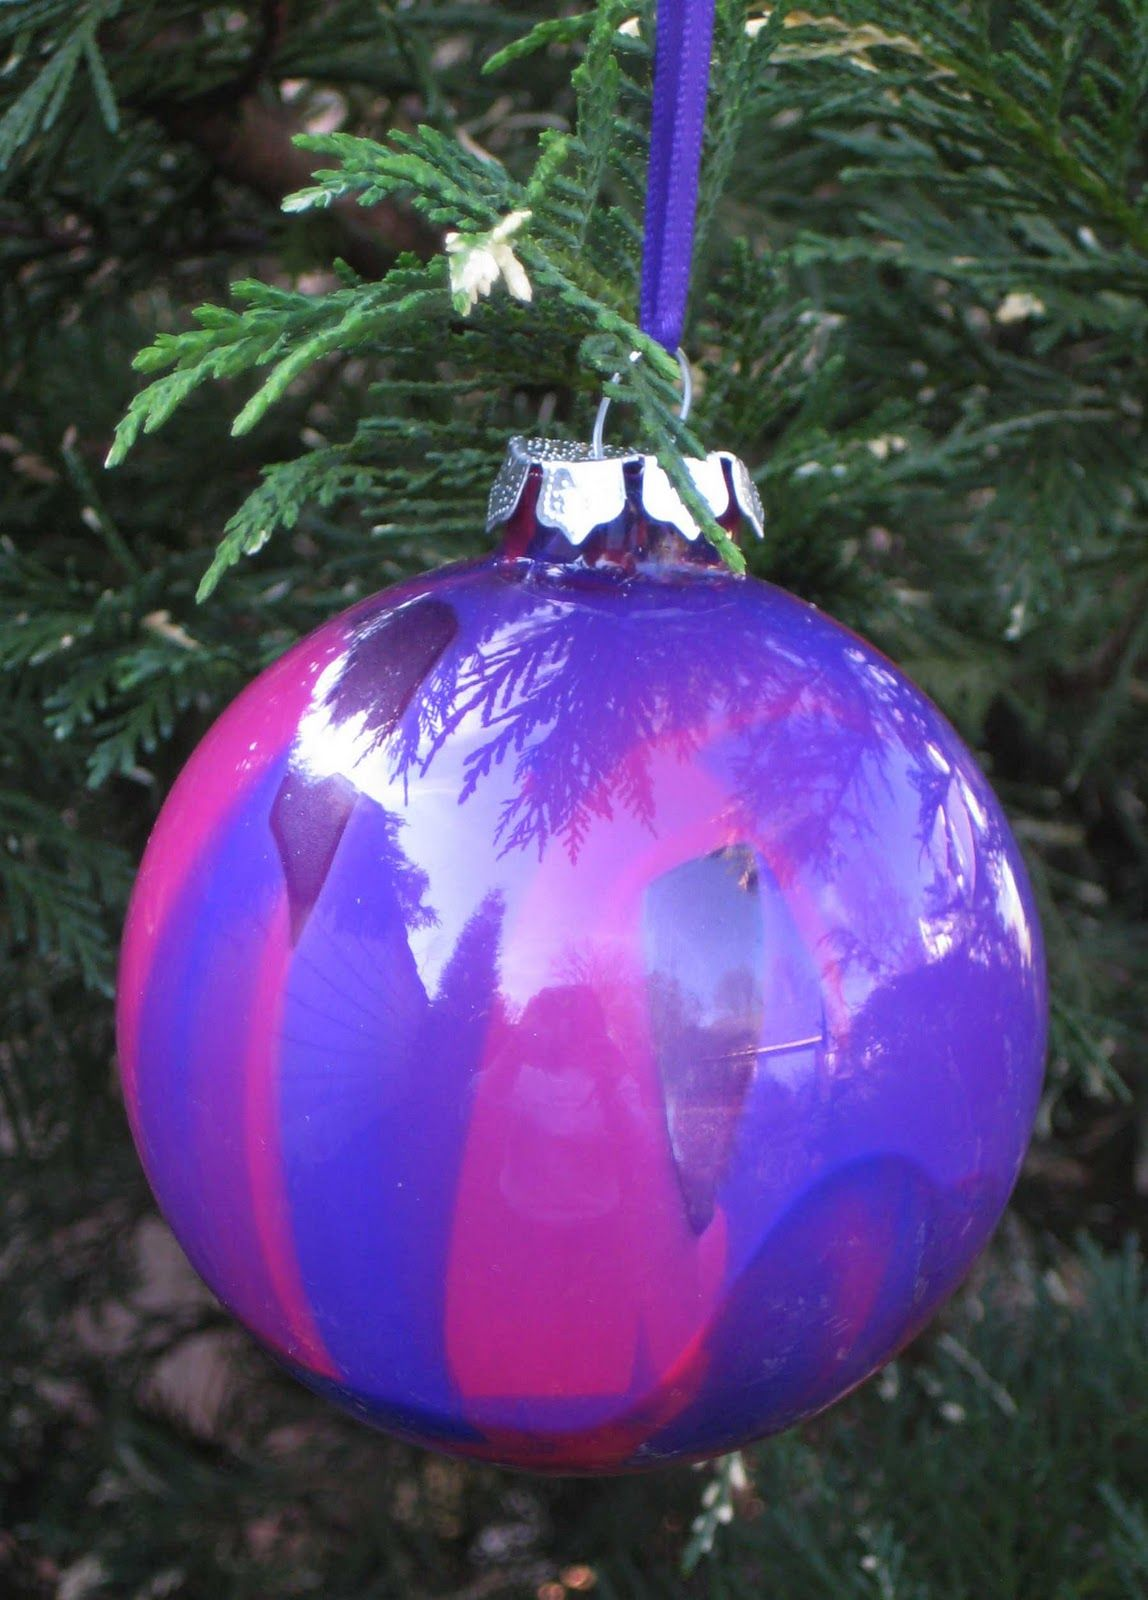 Painted glass balls add elegance to Christmas trees but what if